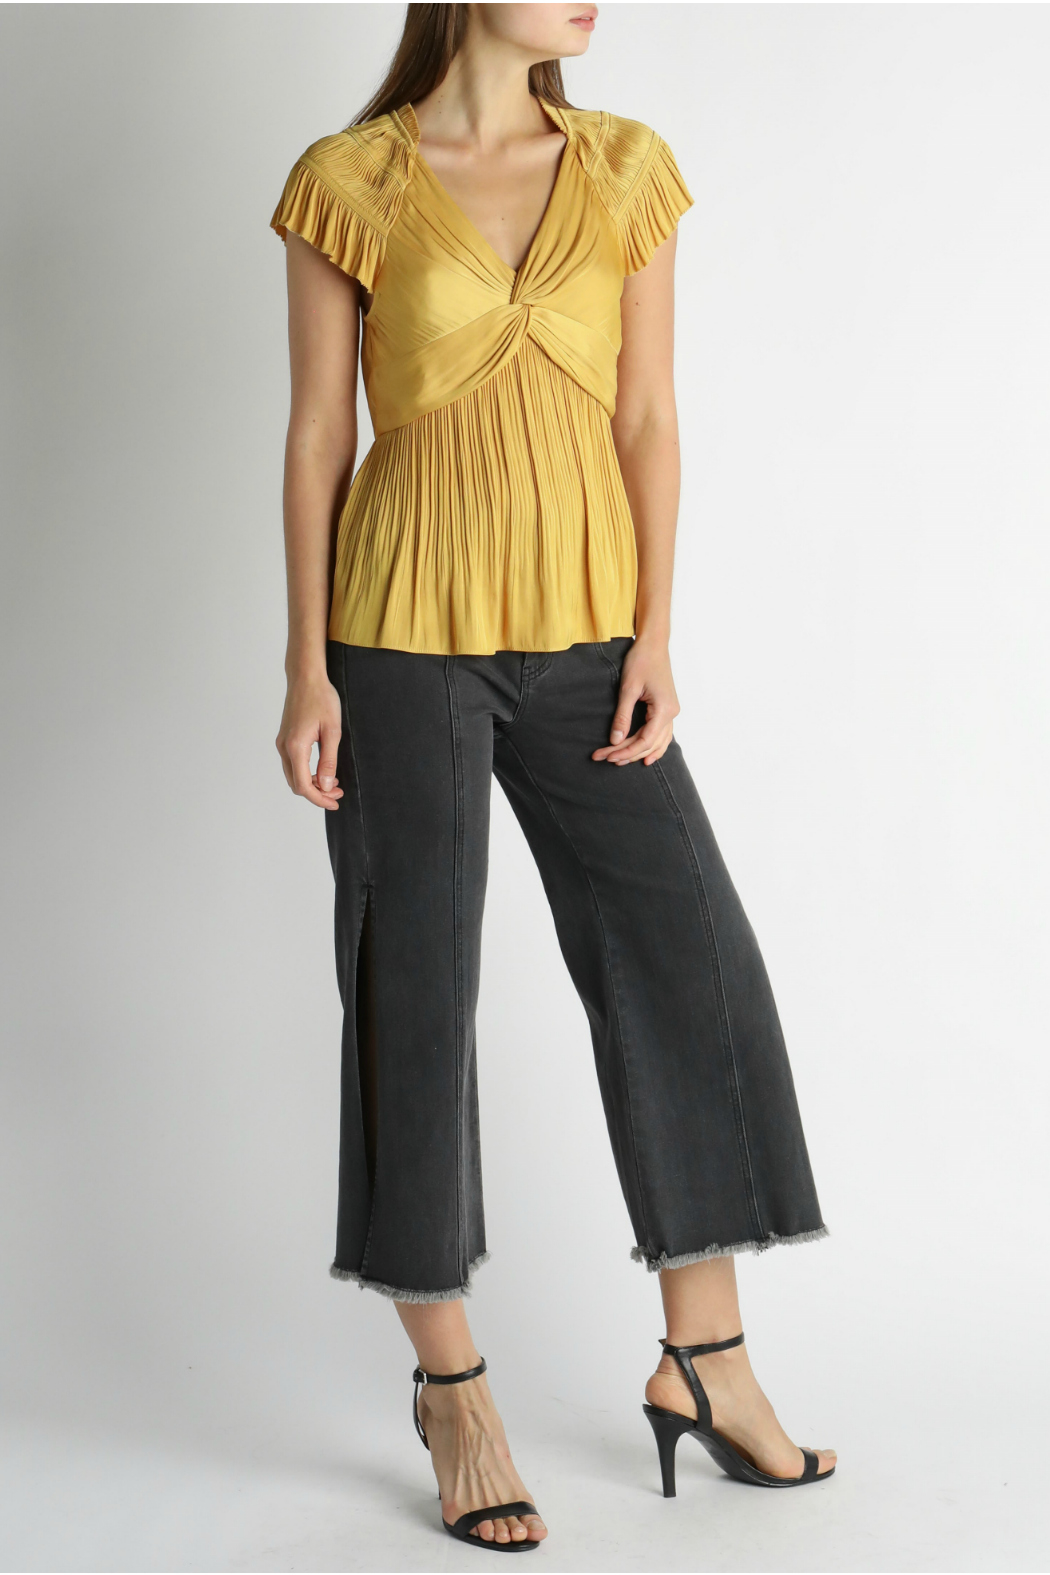 Current Air Front twist pleated top - Front Cropped Image